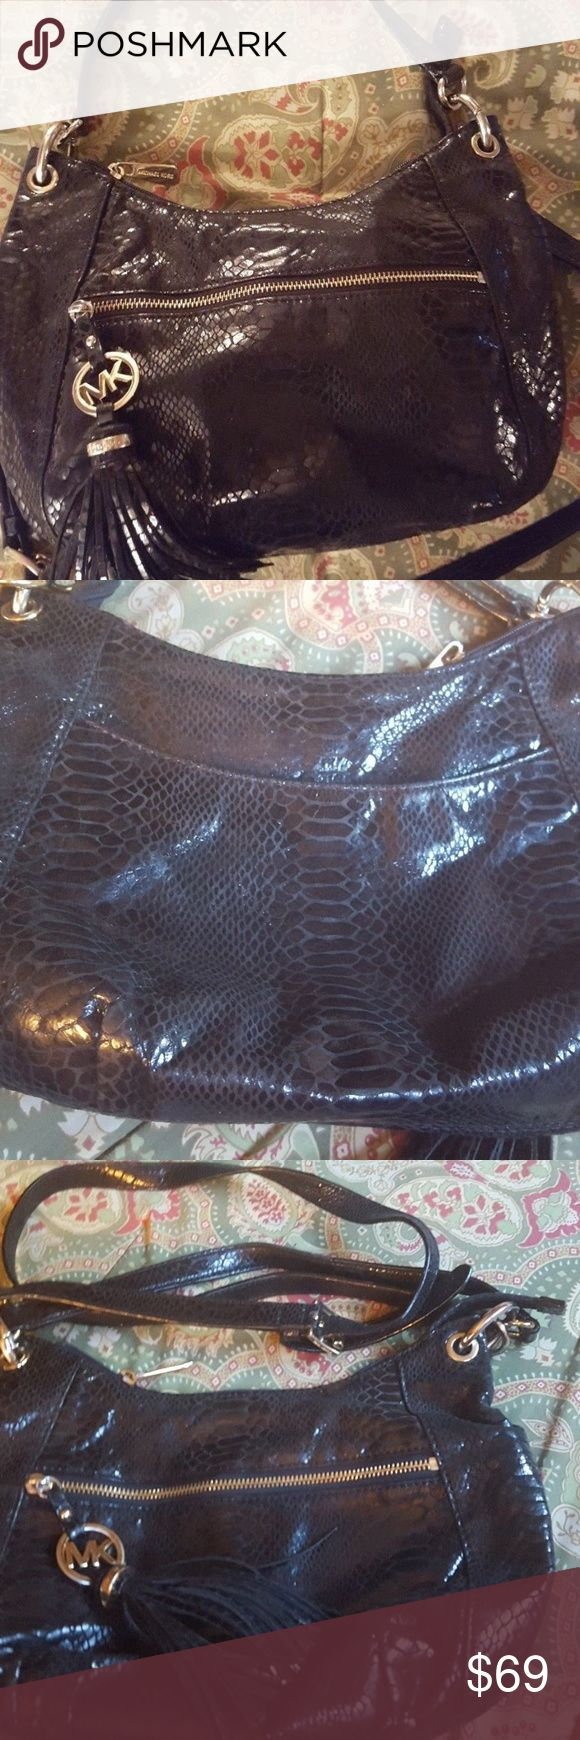 """Michael Kors black handbag shoulder bag purse No stains or defects.  Used as handbag or a shoulder bag.  Shoulder bag straps are 20"""" but can be adjusted and handbag straps are 9""""   Front of bag has zip compartment.  Bag has MK charm and frills below it with gold circular charm above it also reading """"Michael Kors.""""  Bag zips on top (again, zipper has """"Michael Kors"""") and opens to 1 compartment.  Back of bag has zip pocket. Length 13"""", height 9.5"""".  Located in a smoke-free home. Michael Kors…"""